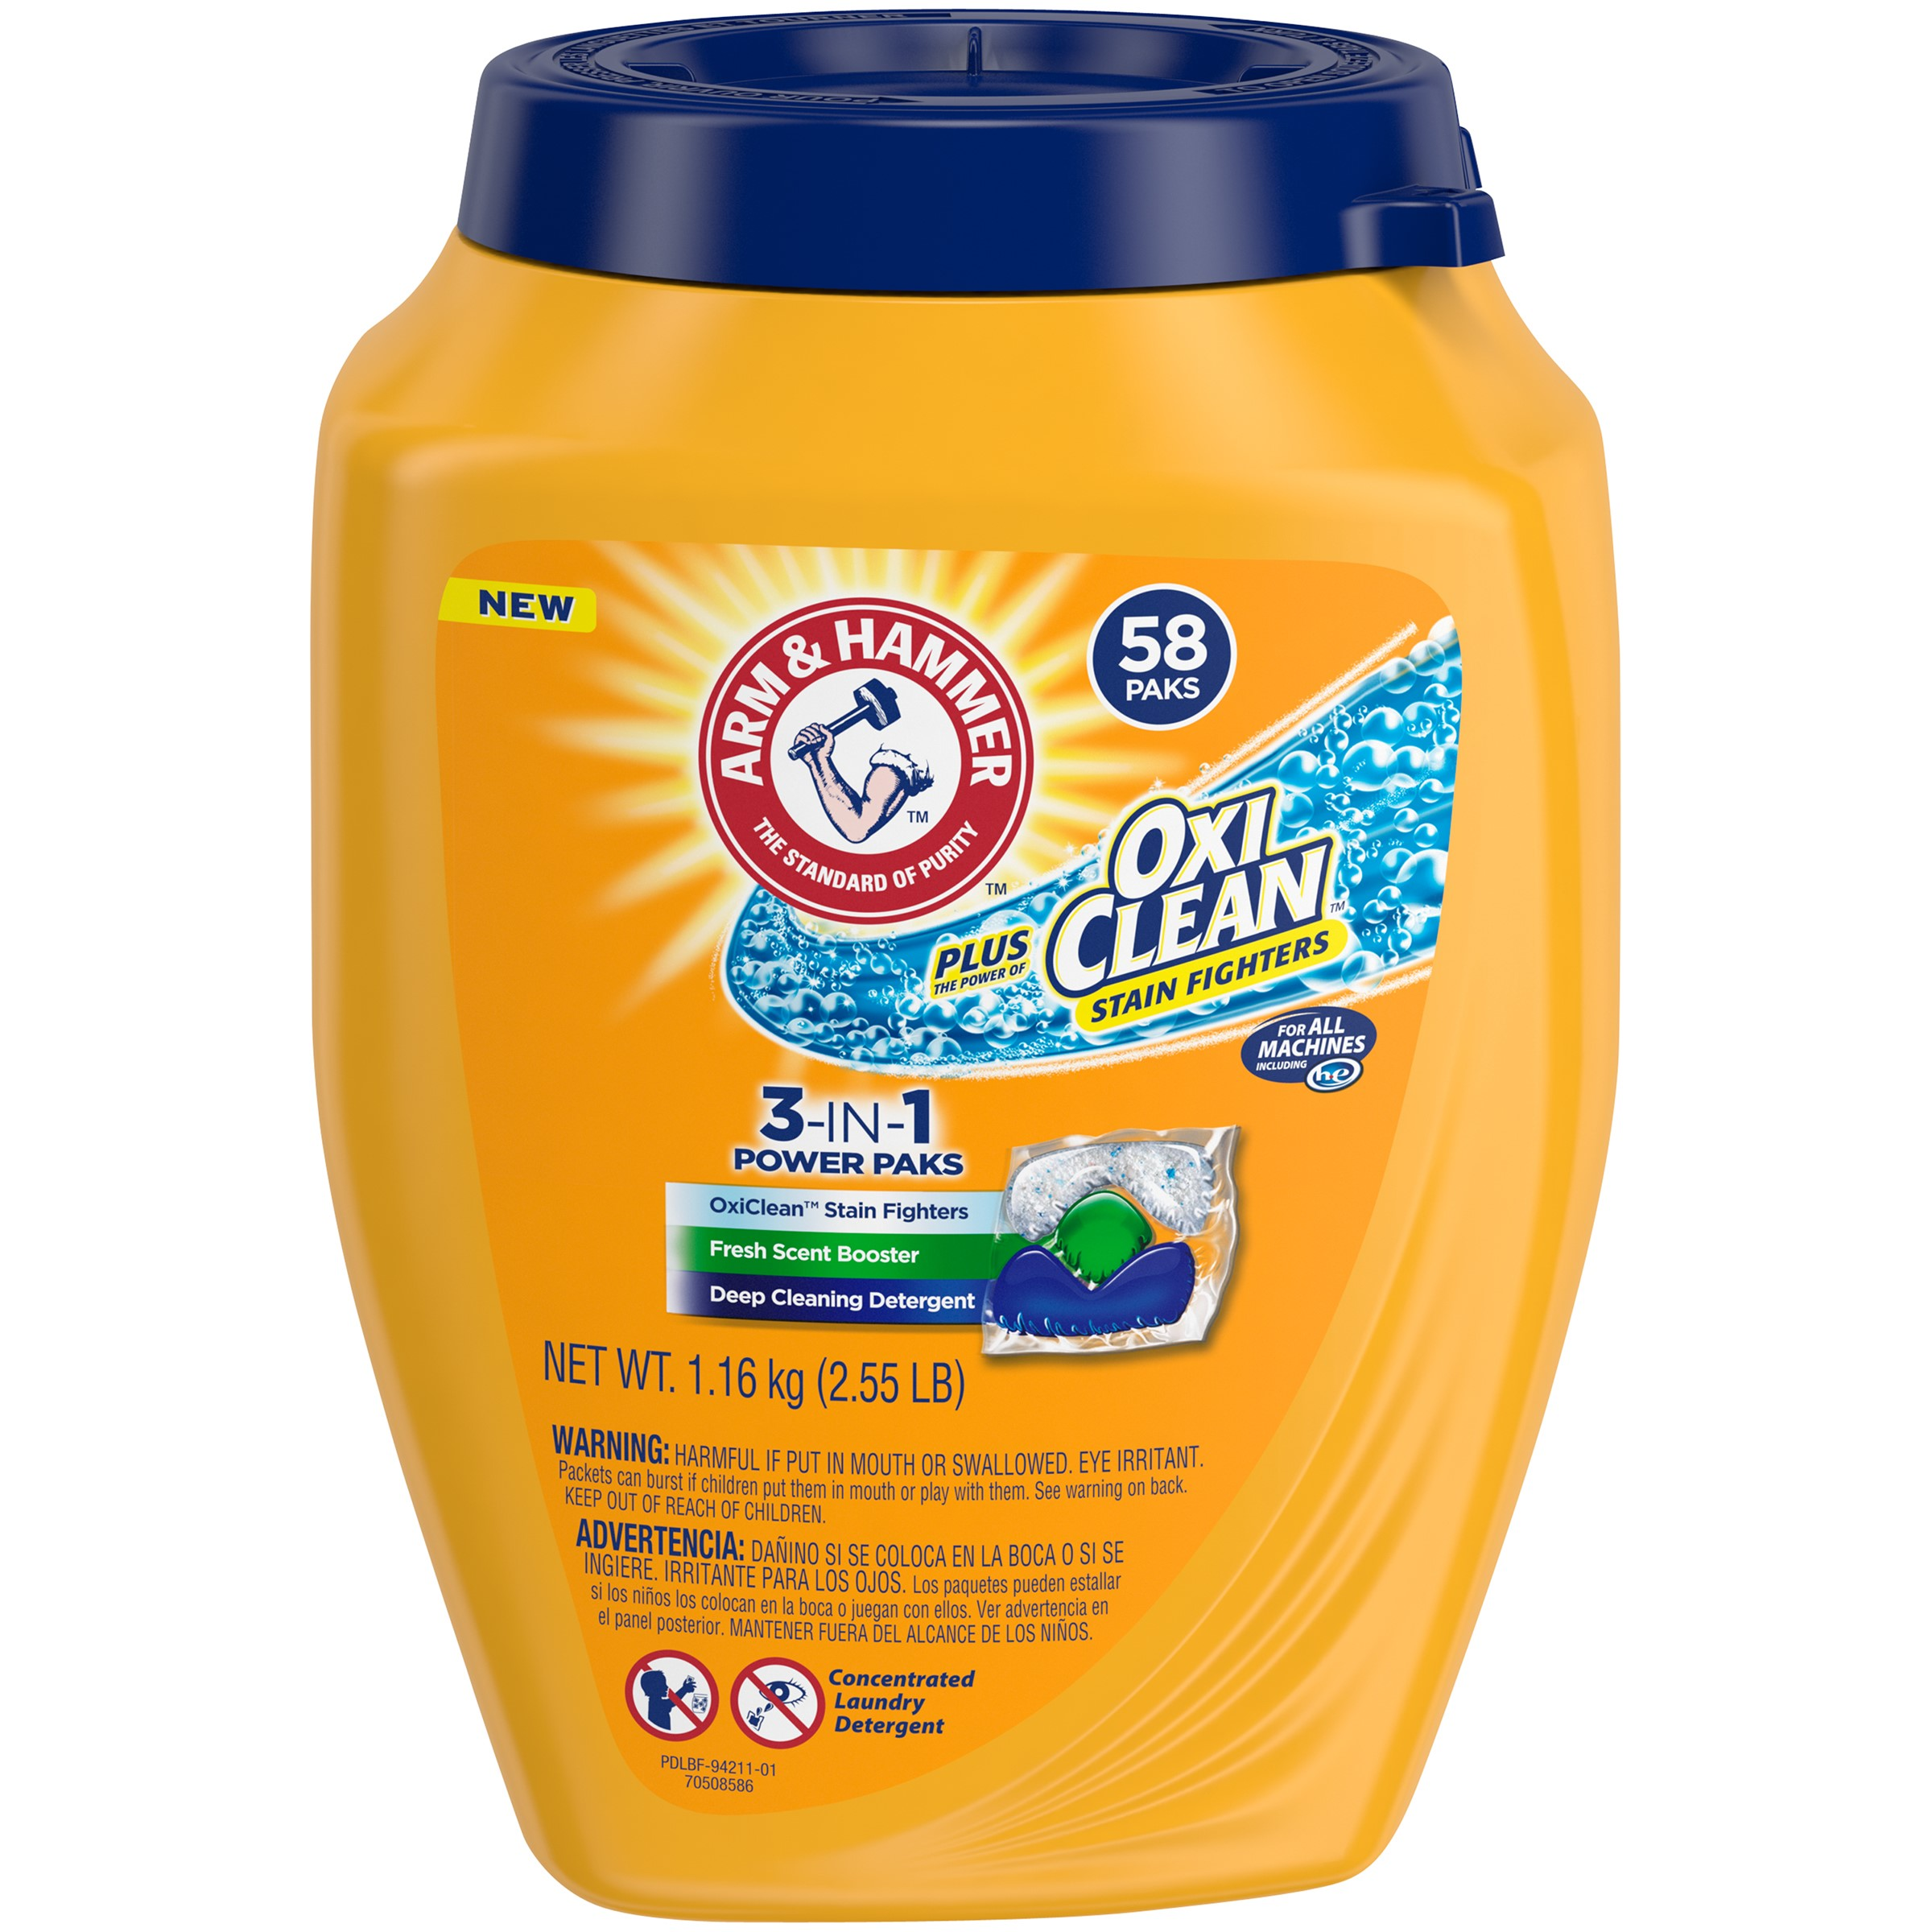 ARM & HAMMER Plus OxiClean 3-in-1 Power Paks - Single Use Laundry Detergent, 58 Count